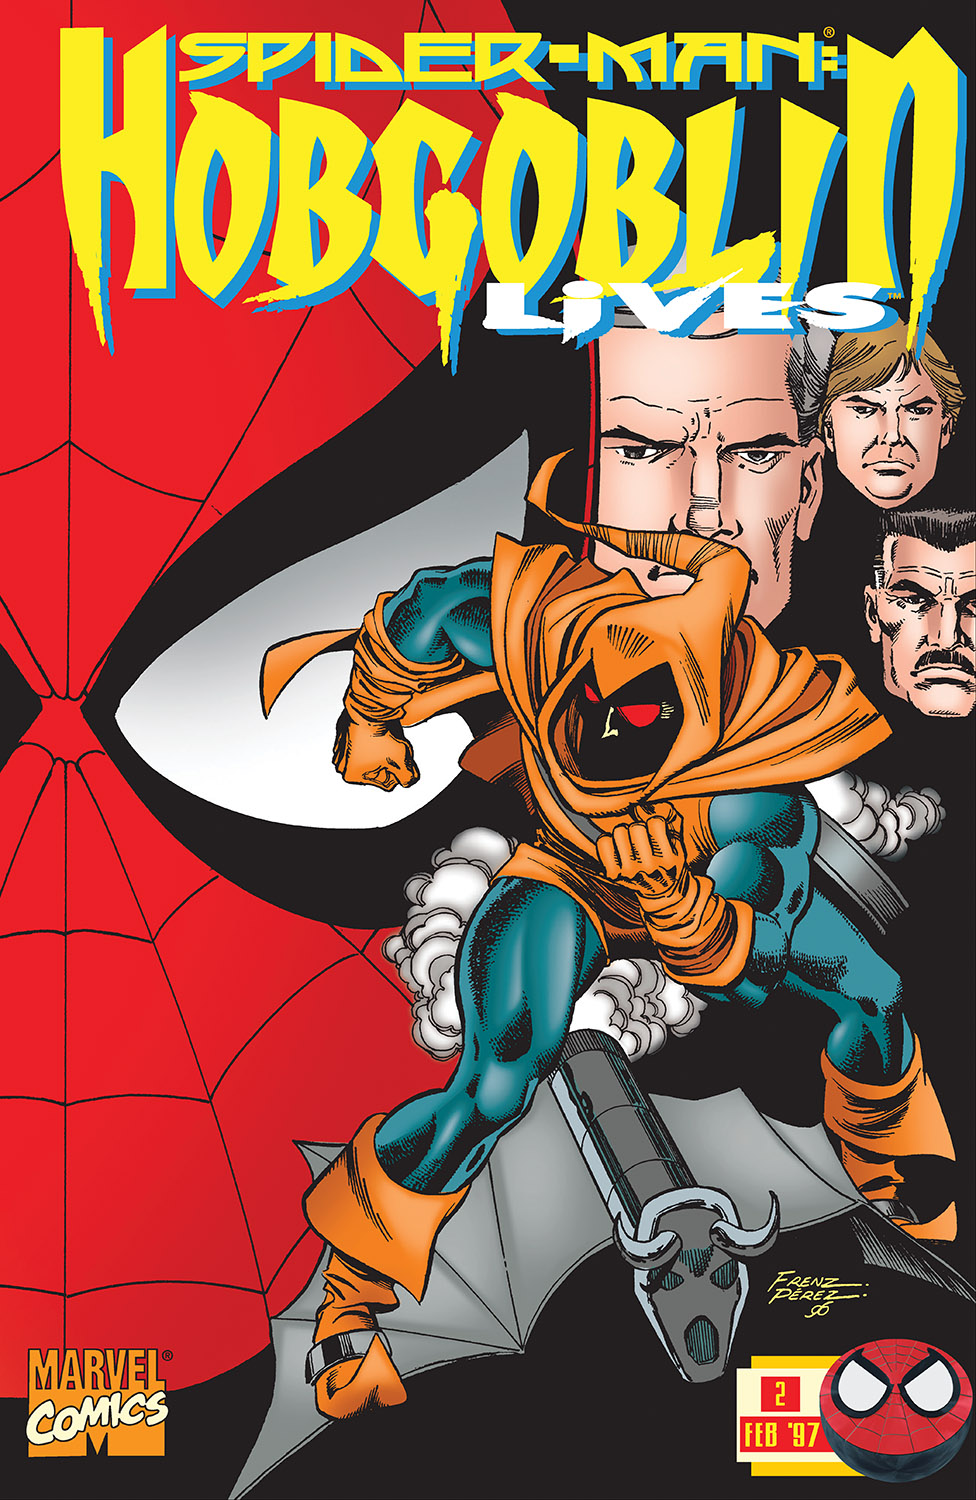 Spider-Man: Hobgoblin Lives (1997) #2